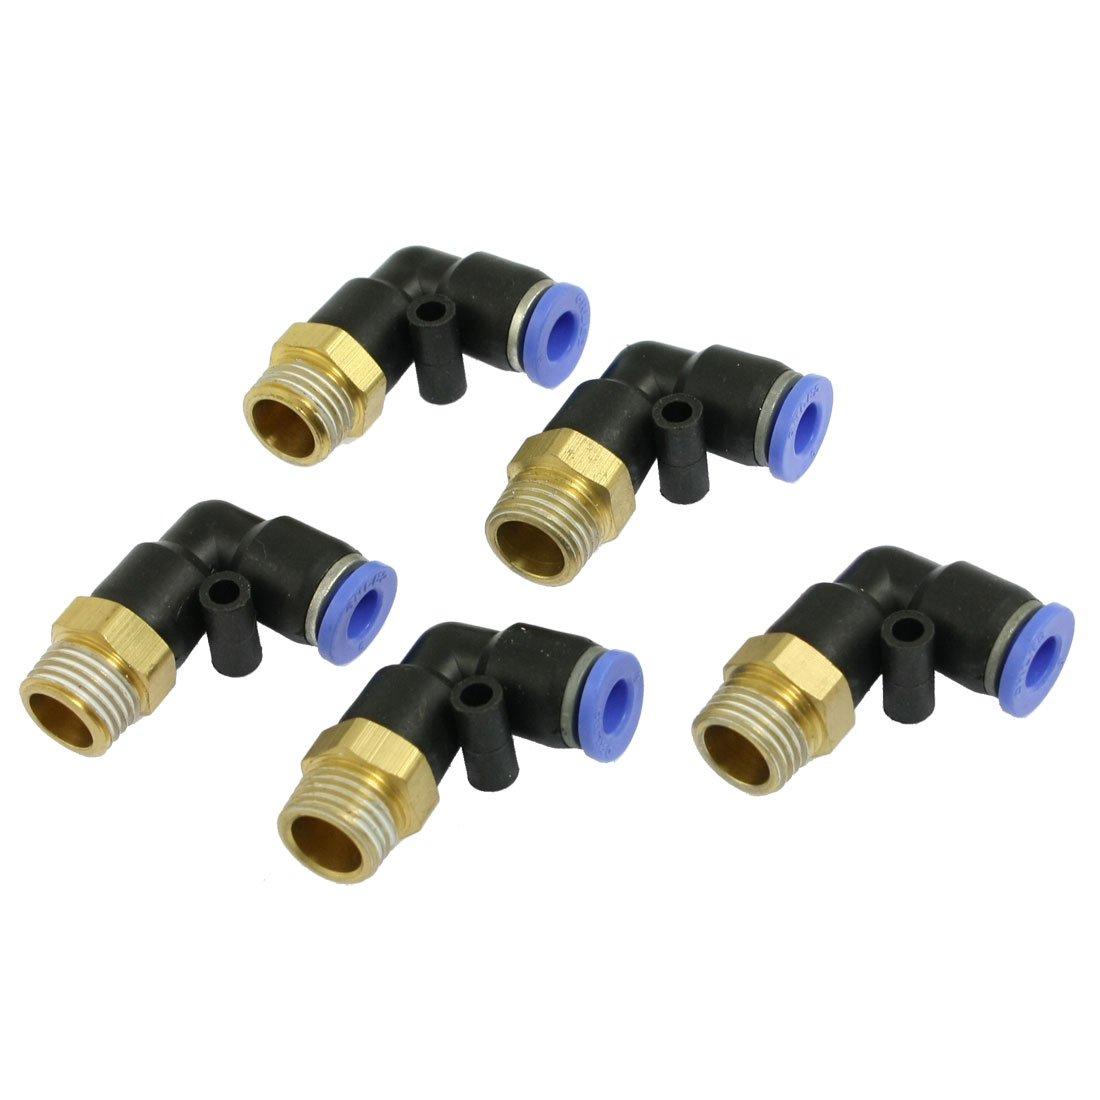 uxcell 6mm x 1/4' PT Push In One Touch Connector Quick Fittings 5 Pcs Amico US-SA-AJD-07100